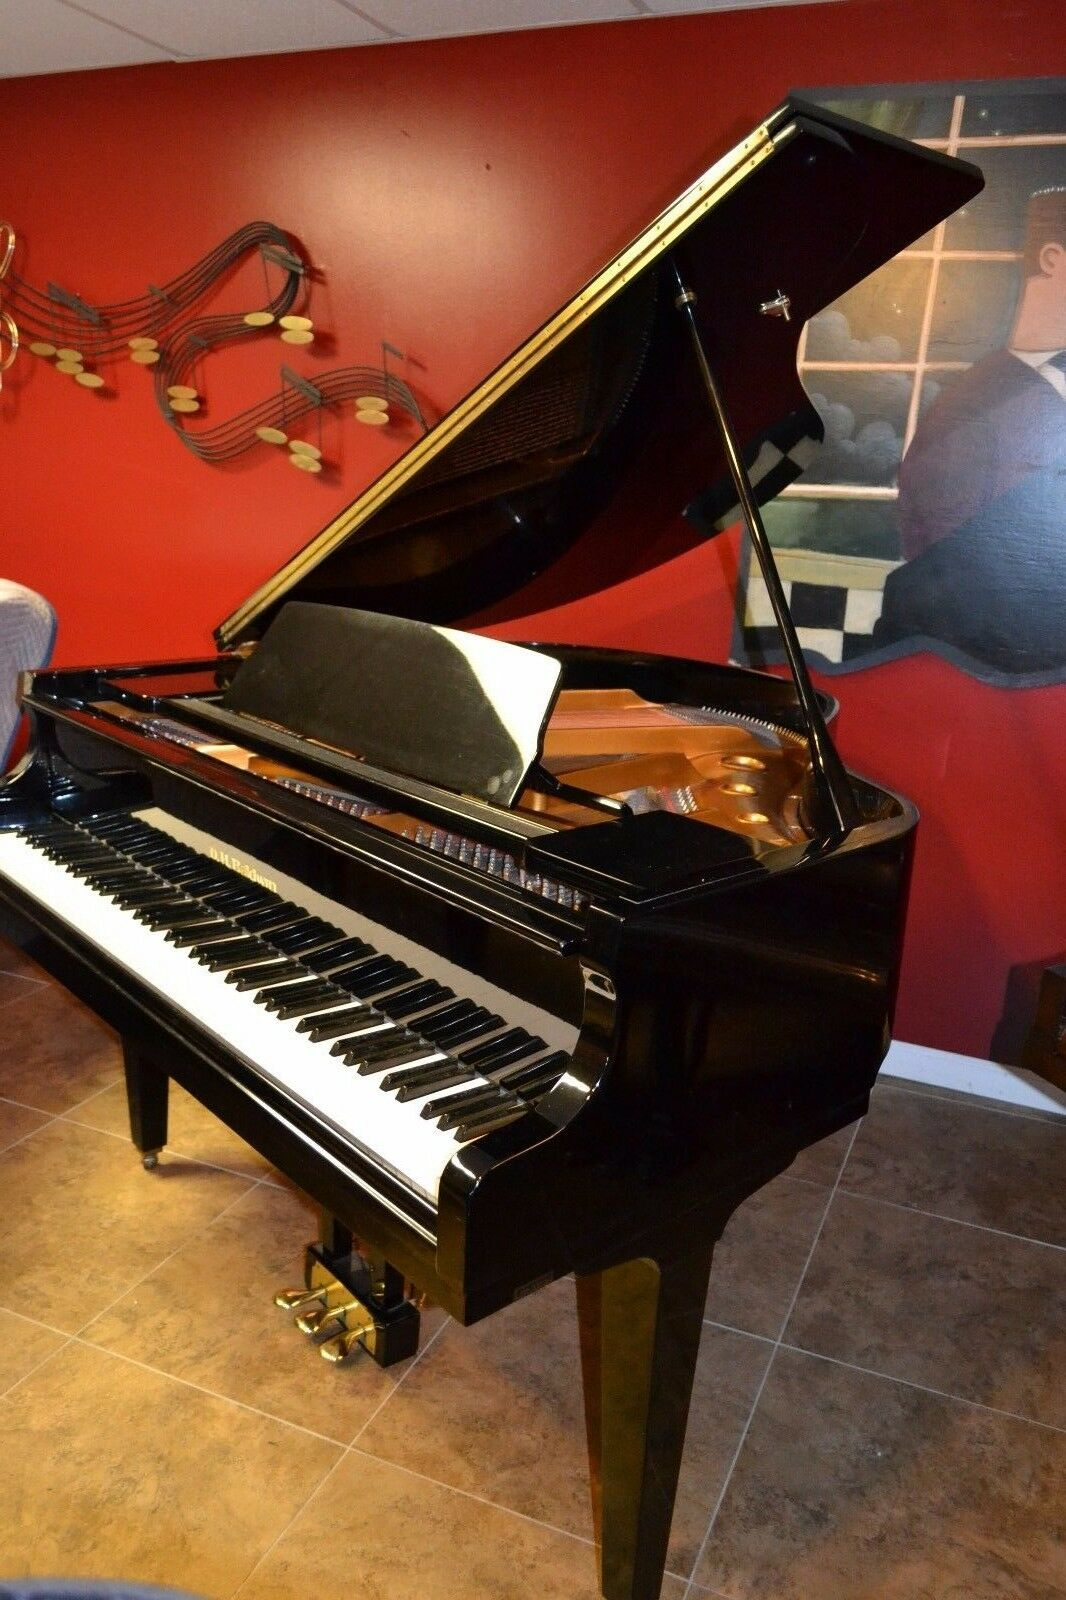 s l1600 - Baldwin Baby grand Piano